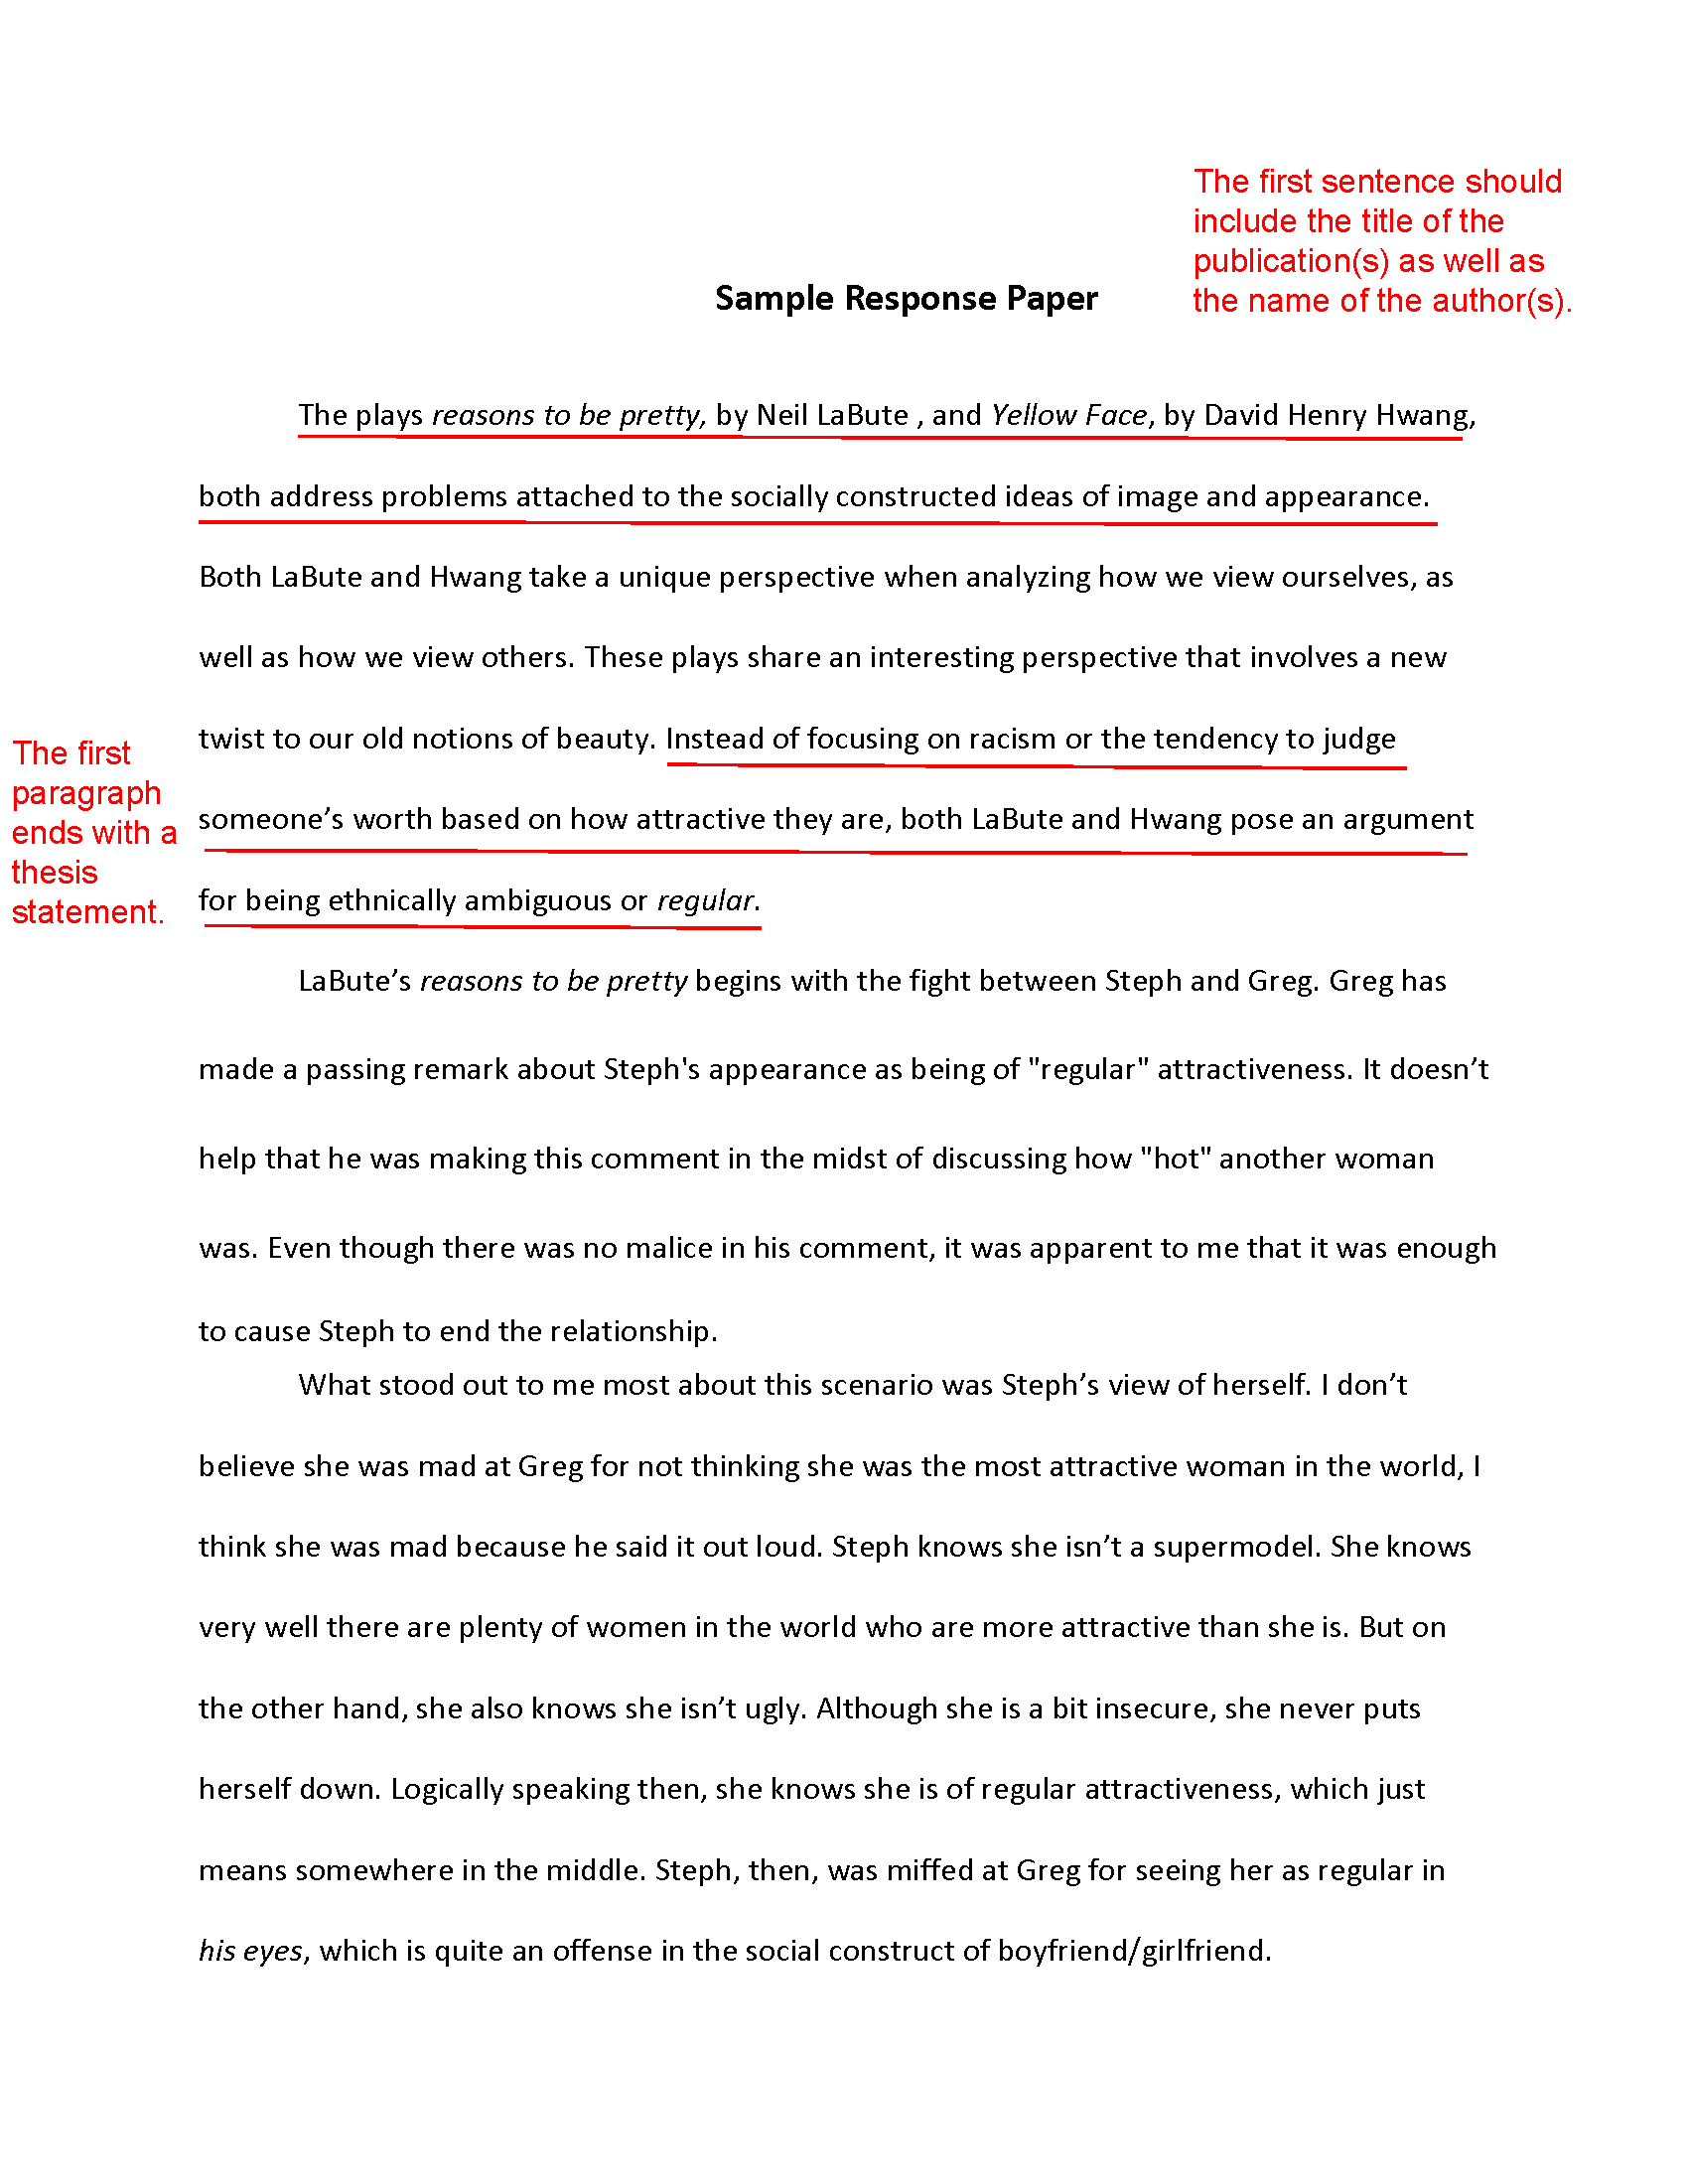 English Class Essay  Essay Writing Topics For High School Students also Compare And Contrast High School And College Essay How To Write A Response Paper Essay Vs Paper